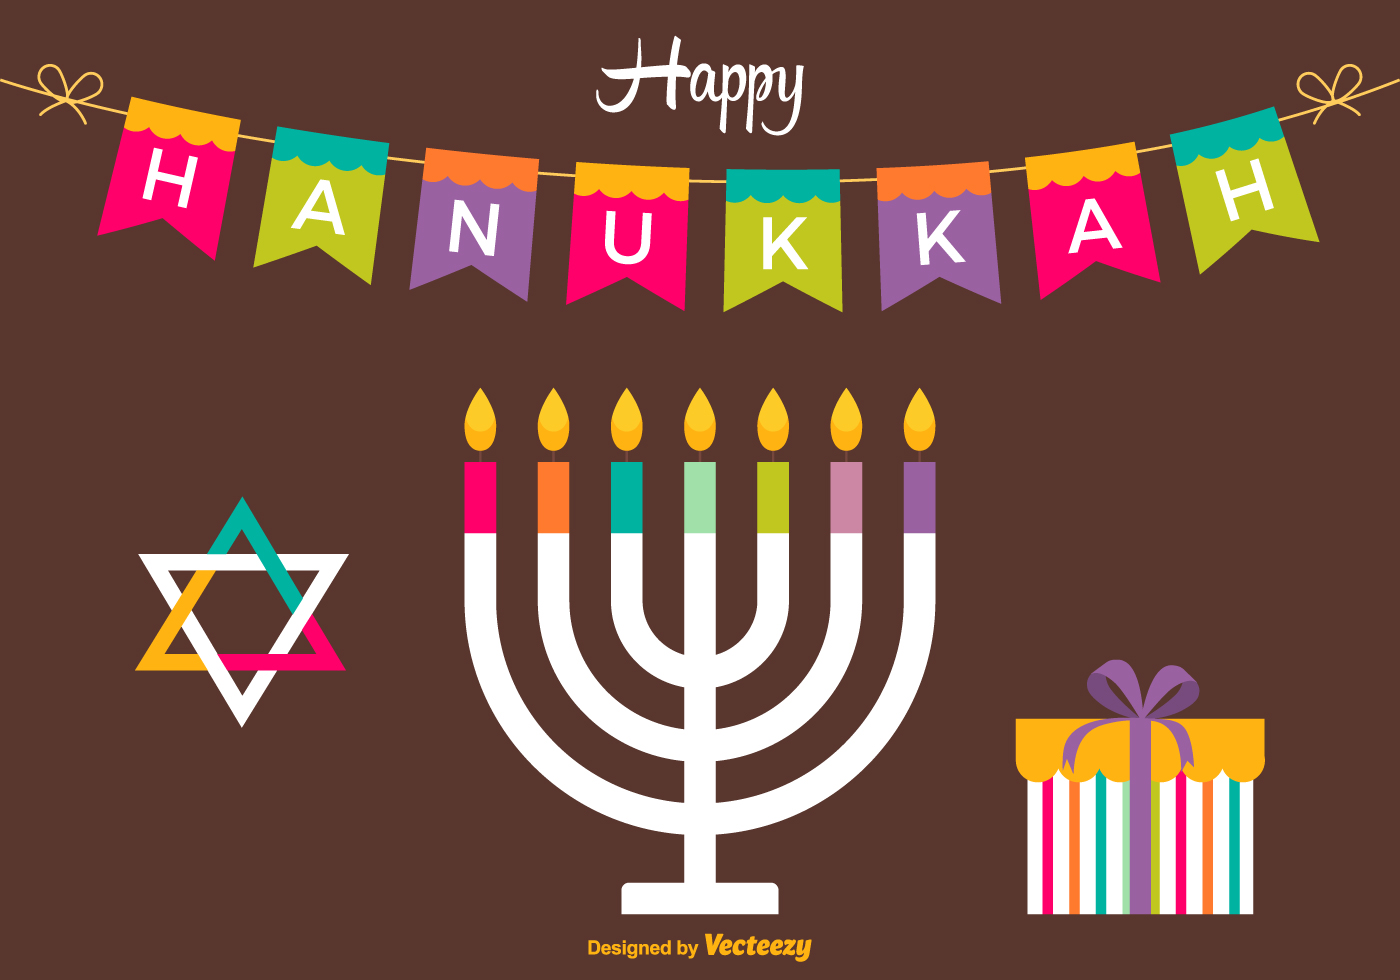 Happy Hanukkah Vector Card Download Free Vector Art Stock